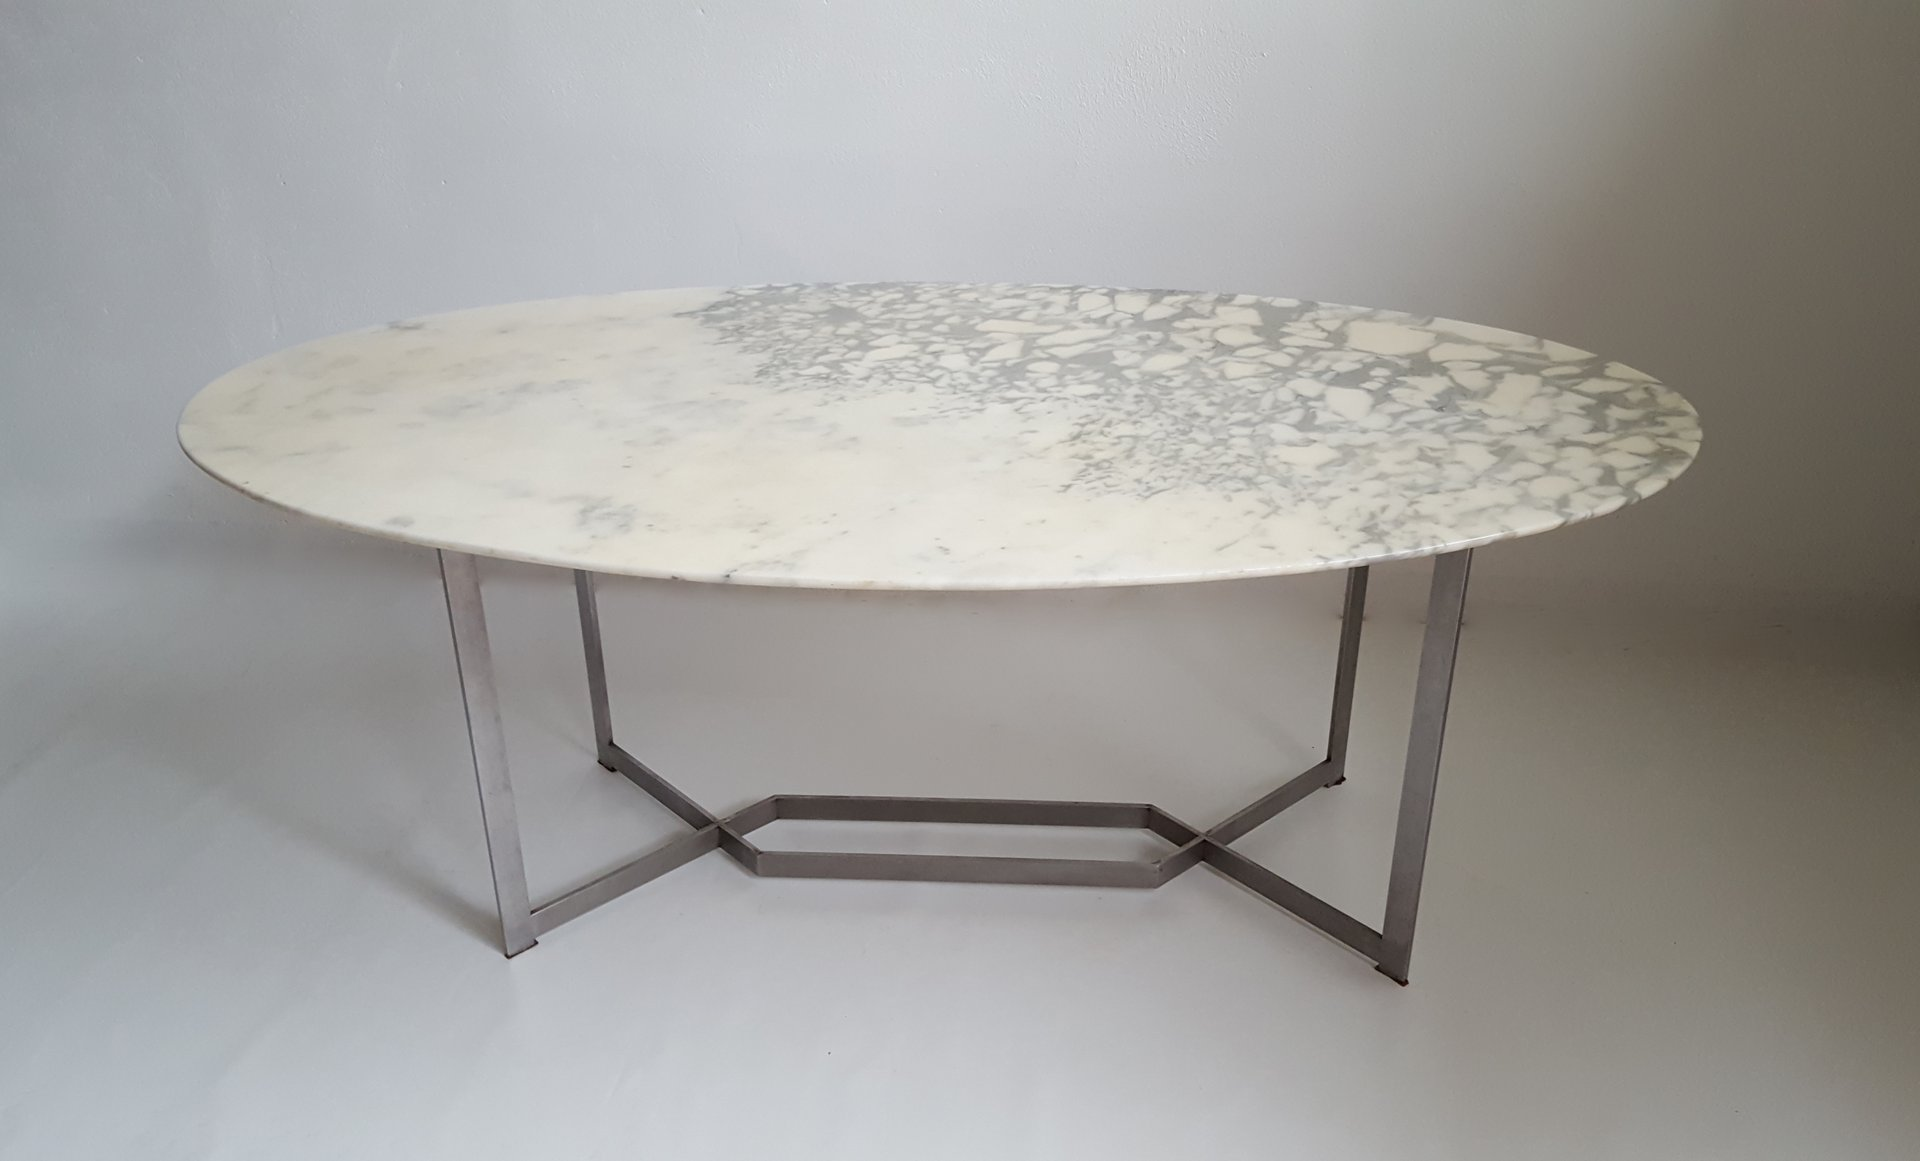 french oval marble stainless steel dining table by paul legeard 1970 for sale at pamono. Black Bedroom Furniture Sets. Home Design Ideas